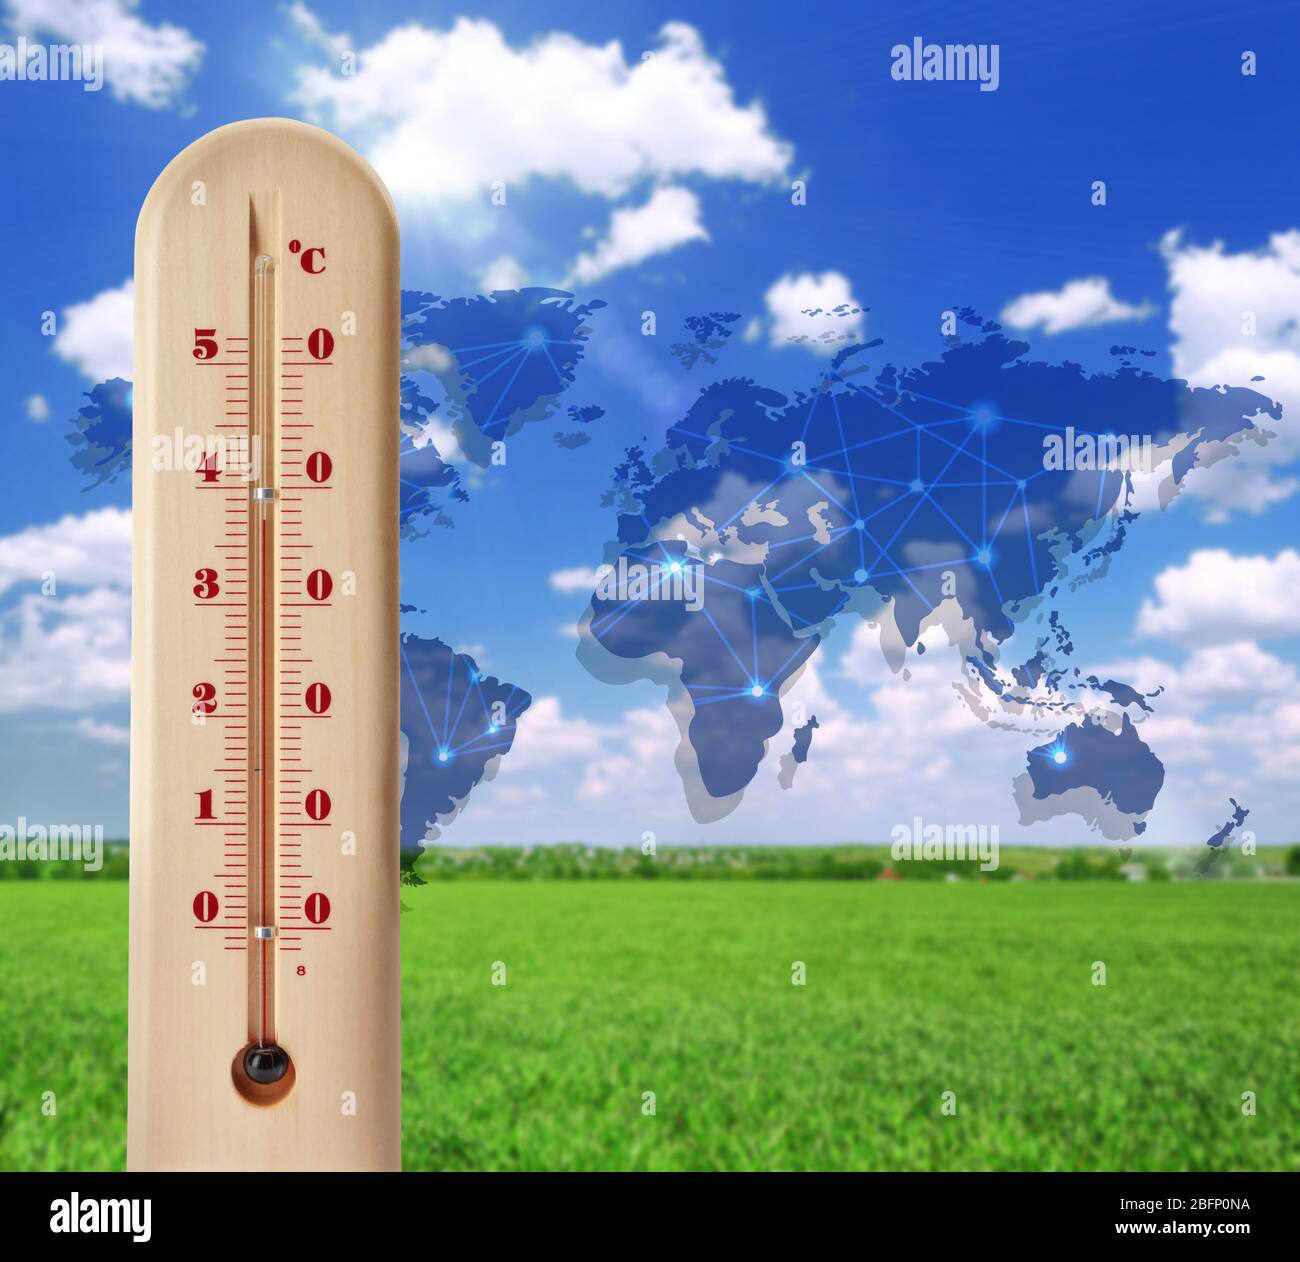 World map with thermometer showing high temperature and landscape on background. Concept of global warming and climate change. Save planet and environ Stock Photo